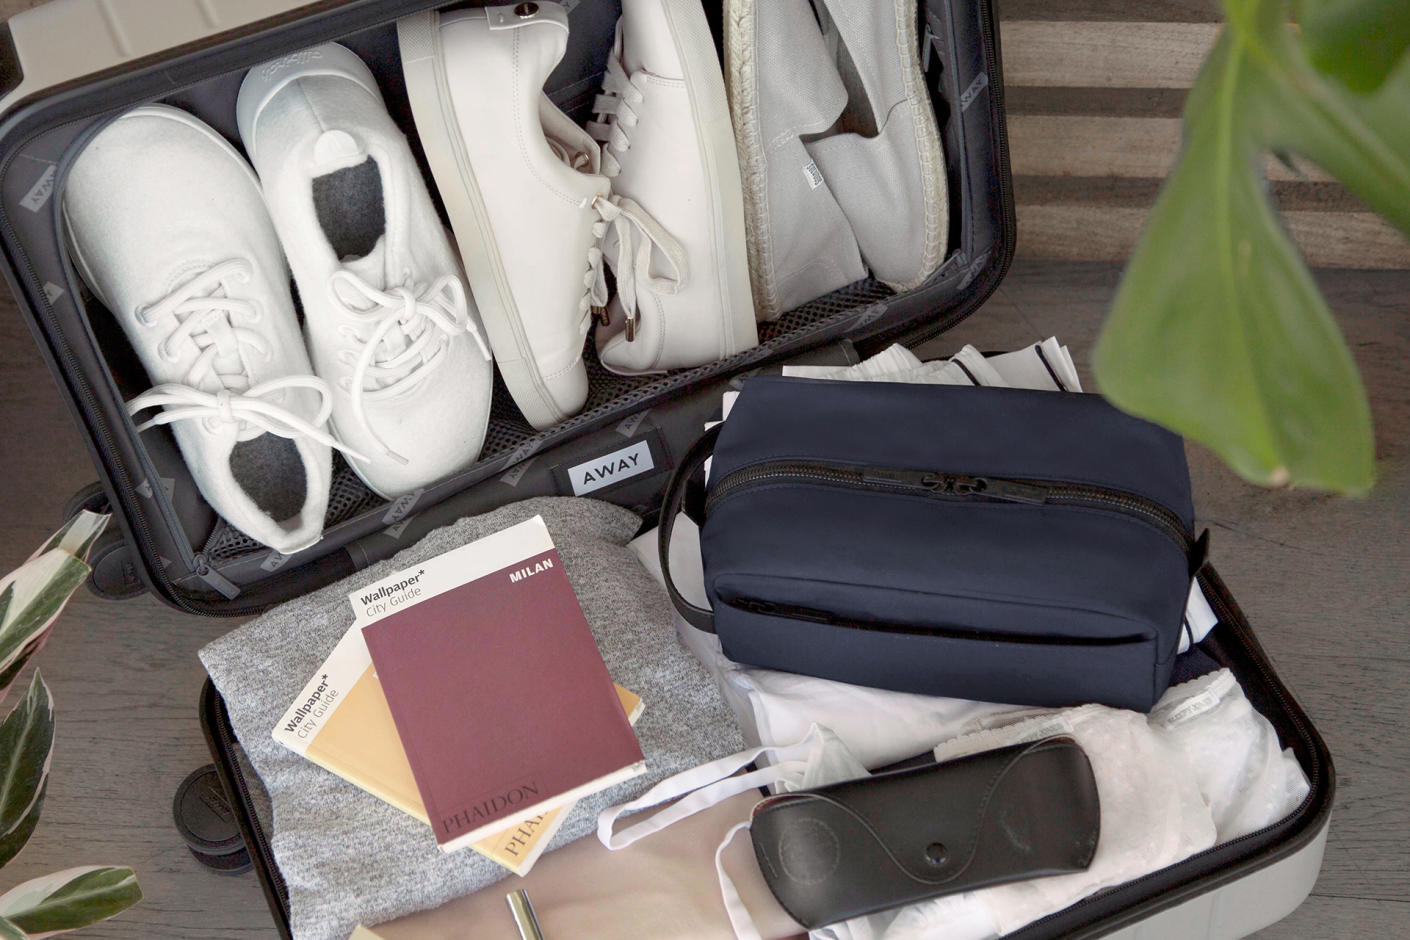 A closed Dopp Kit in Navy sitting on top of an open and packed suitcase.